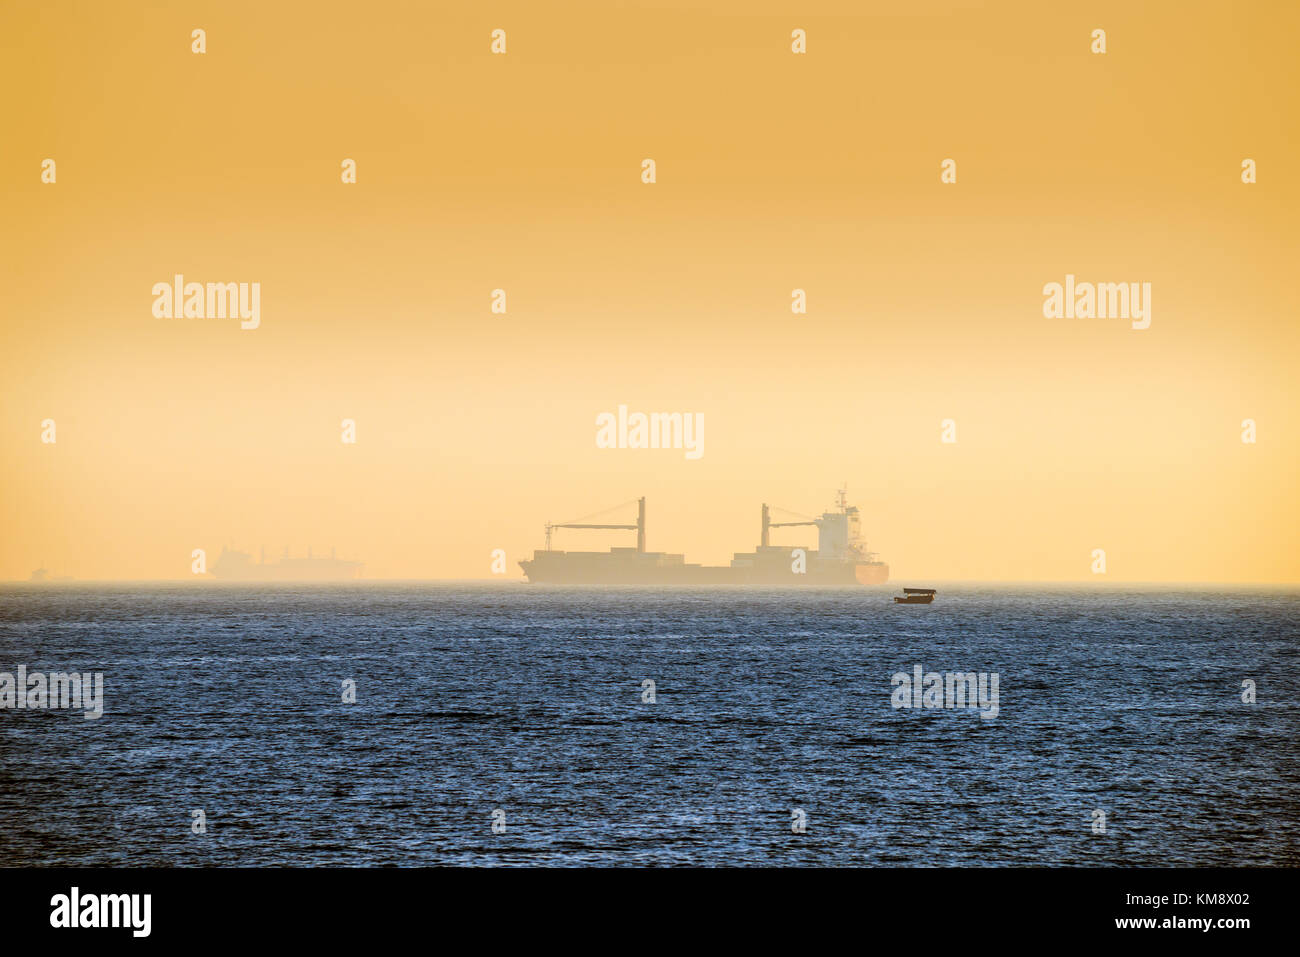 Shipping and Local Craft, South China Sea, Hong Kong, Sunset Stock Photo